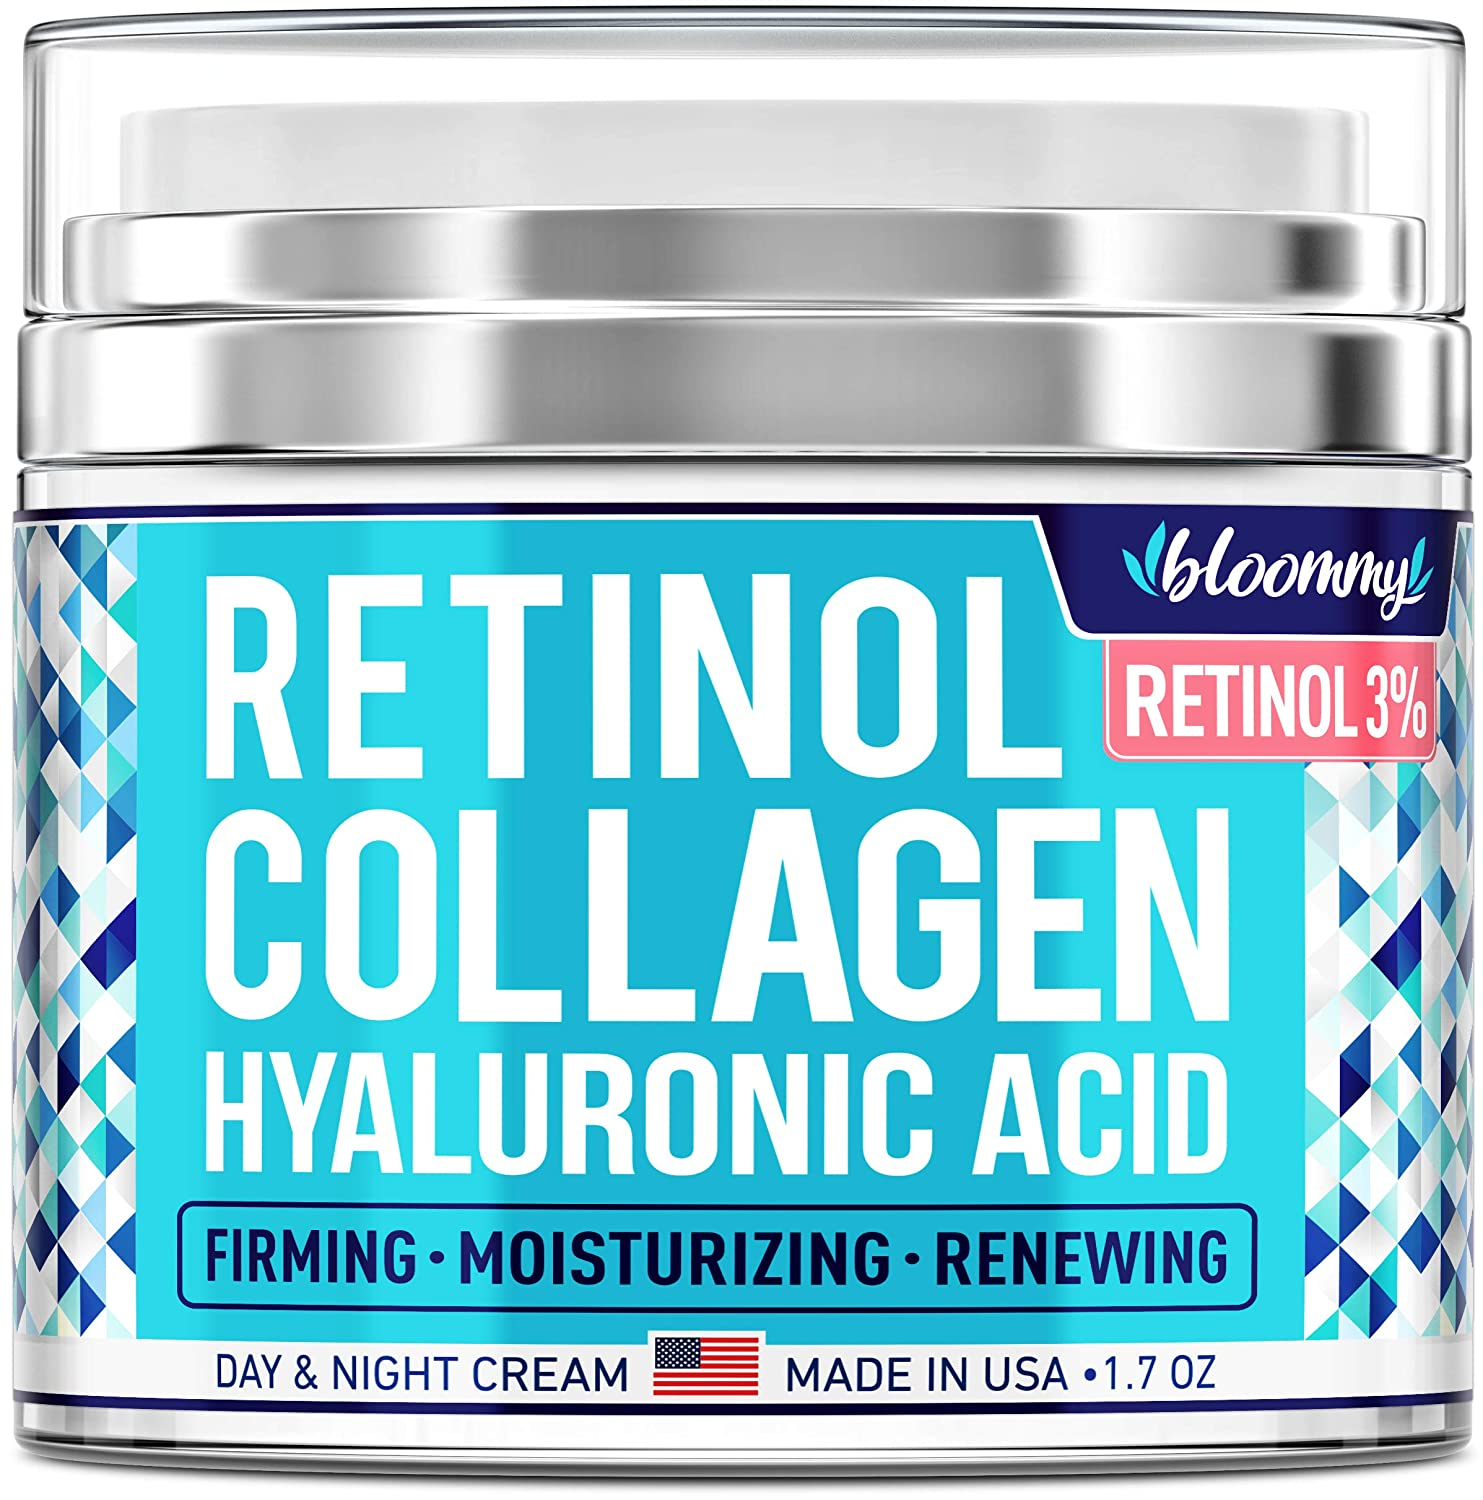 Collagen & Retinol Cream for Face with Hyaluronic Acid - Collagen Anti Aging Cream - Retinol Moisturizer for Face - Made in USA - Anti Wrinkle Facial Cream - Day & Night Moisturizer for Face